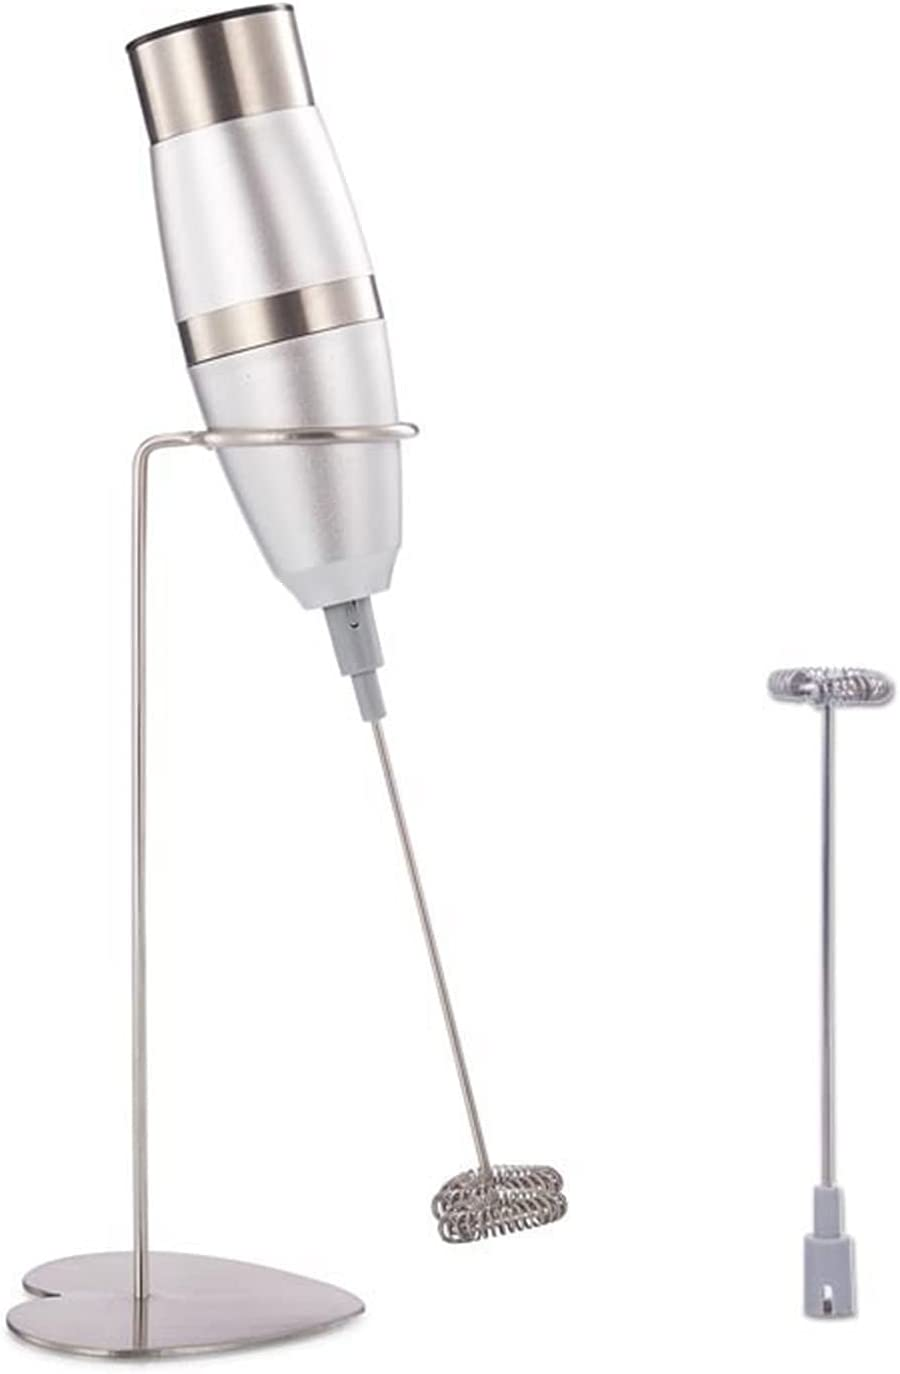 MAOGOO Electric Handheld San Antonio Mall Frother,high-grade Milk Stainless Easy-to-use